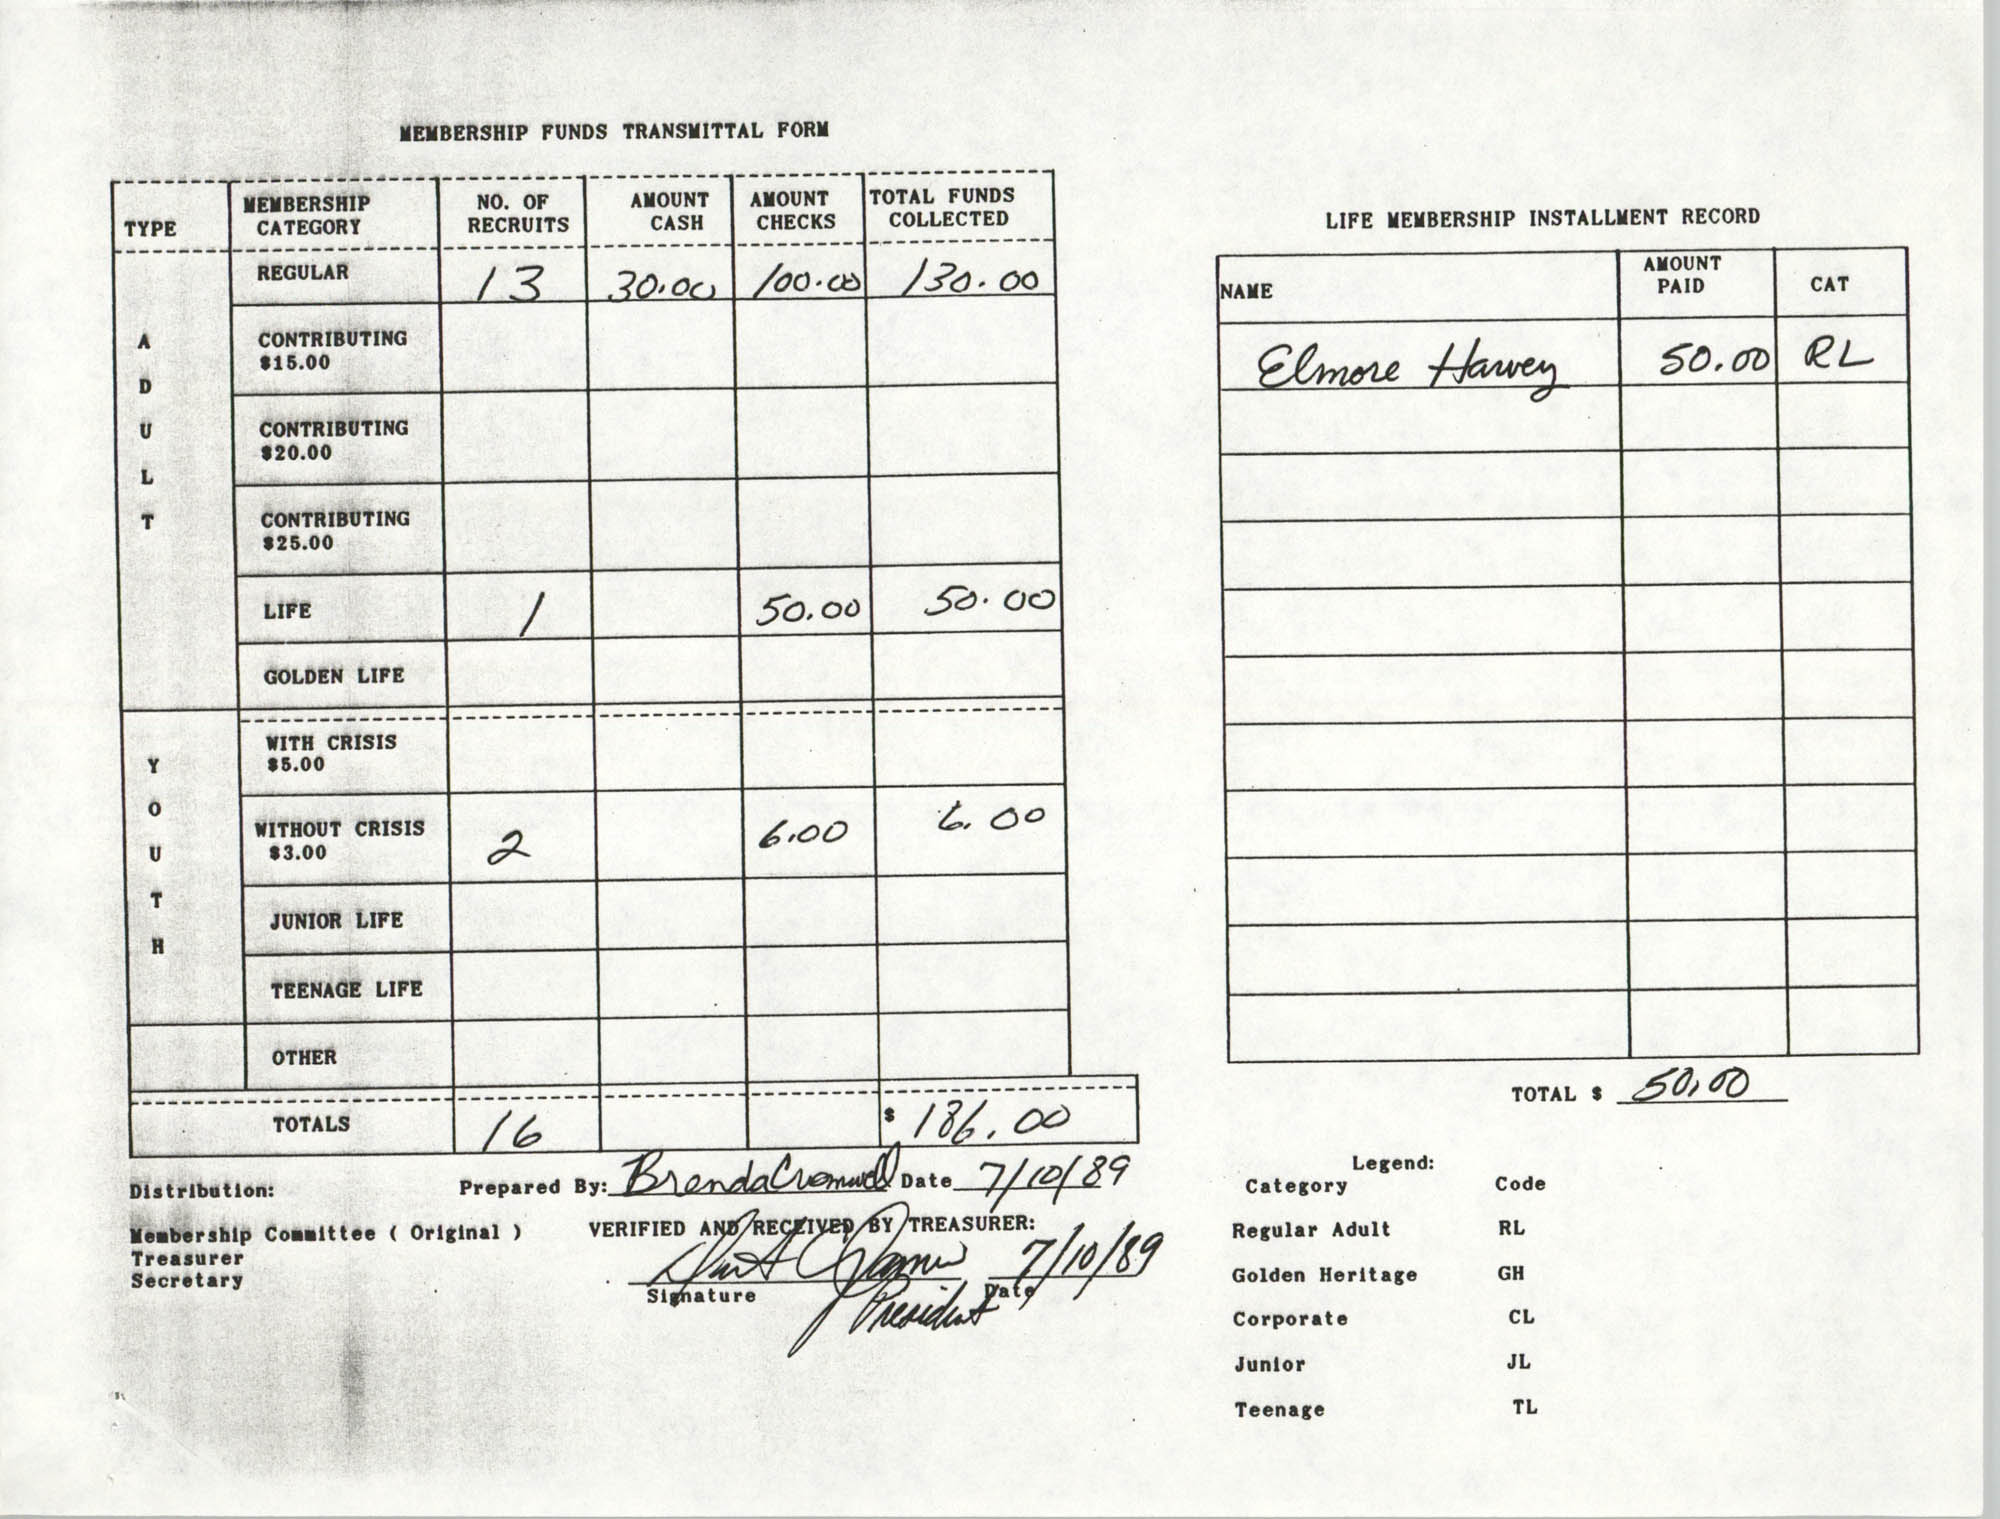 Charleston Branch of the NAACP Funds Transmittal Forms, July 1989, Page 1